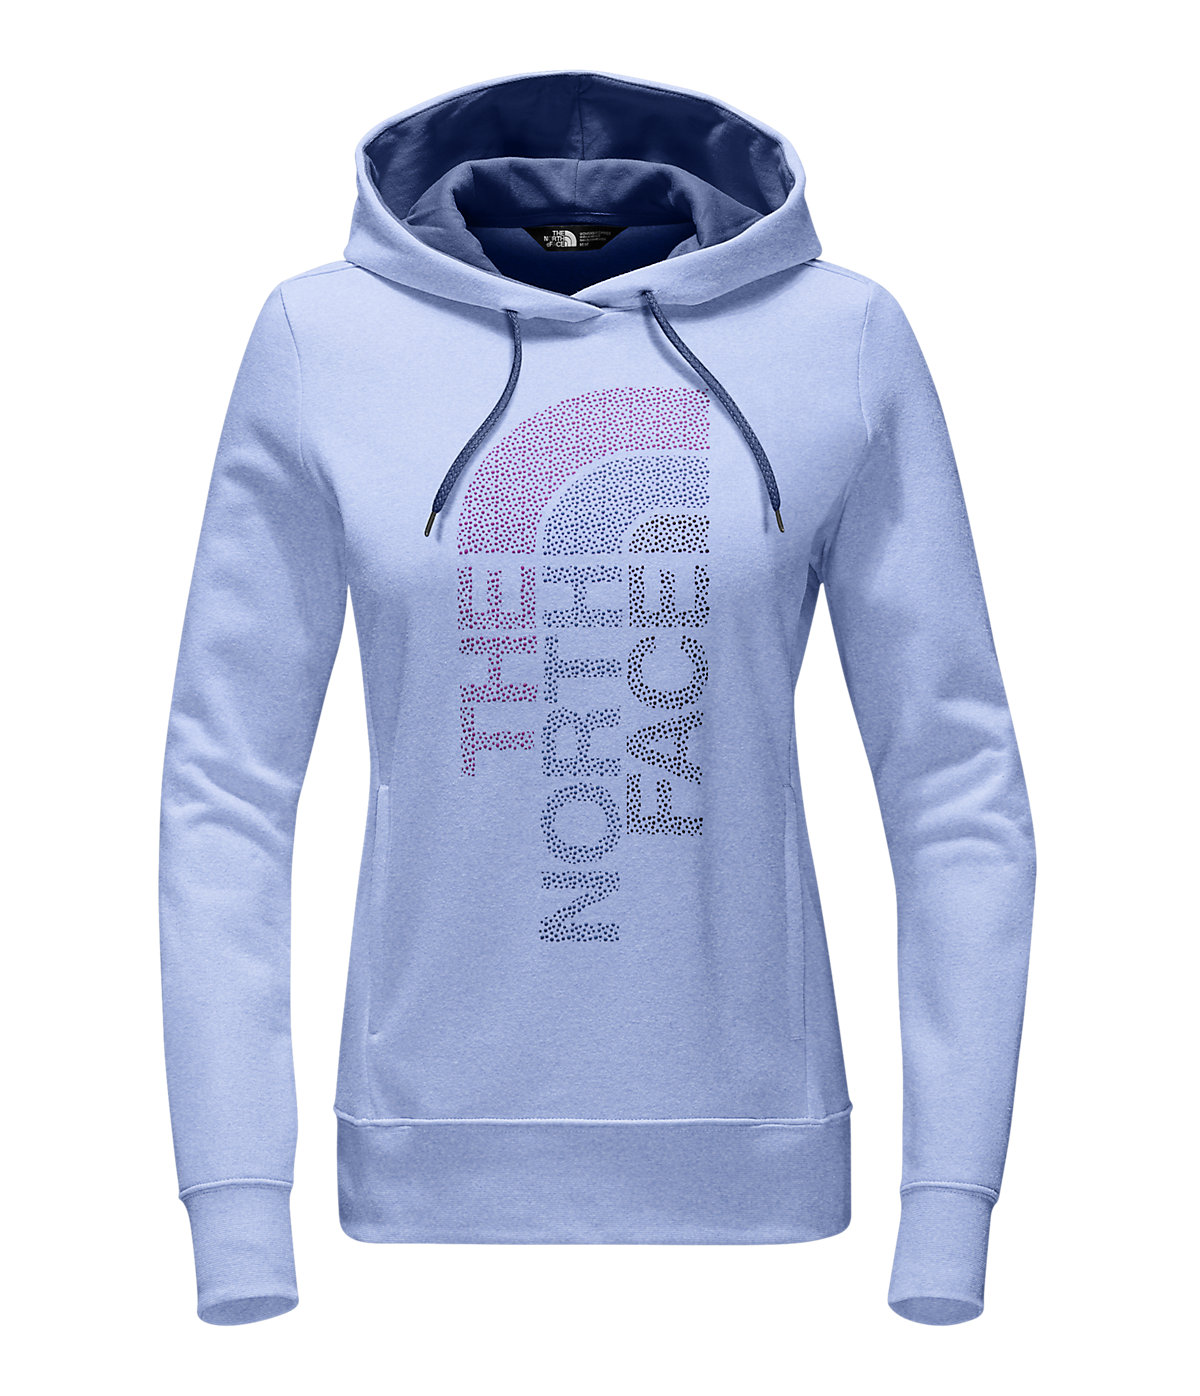 2645a5efb The North Face WOMEN'S TRIVERT PULLOVER HOODIE